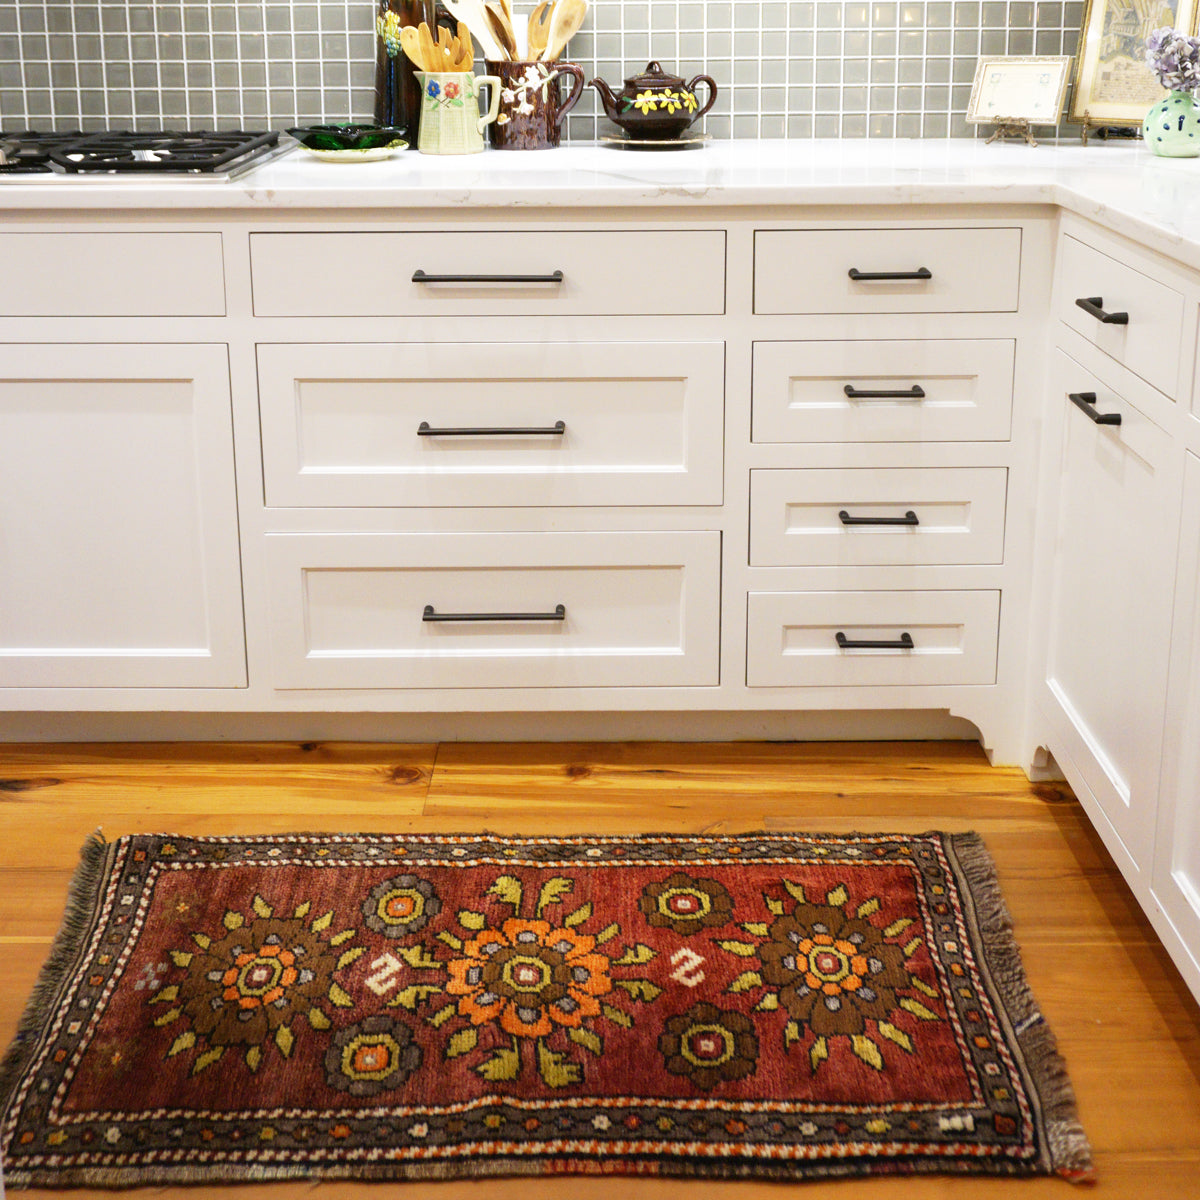 The 36 Flowers Vintage Turkish rug is filled with warm colors and is perfect for kitchens, bathrooms and entryways. 25x45 inches.